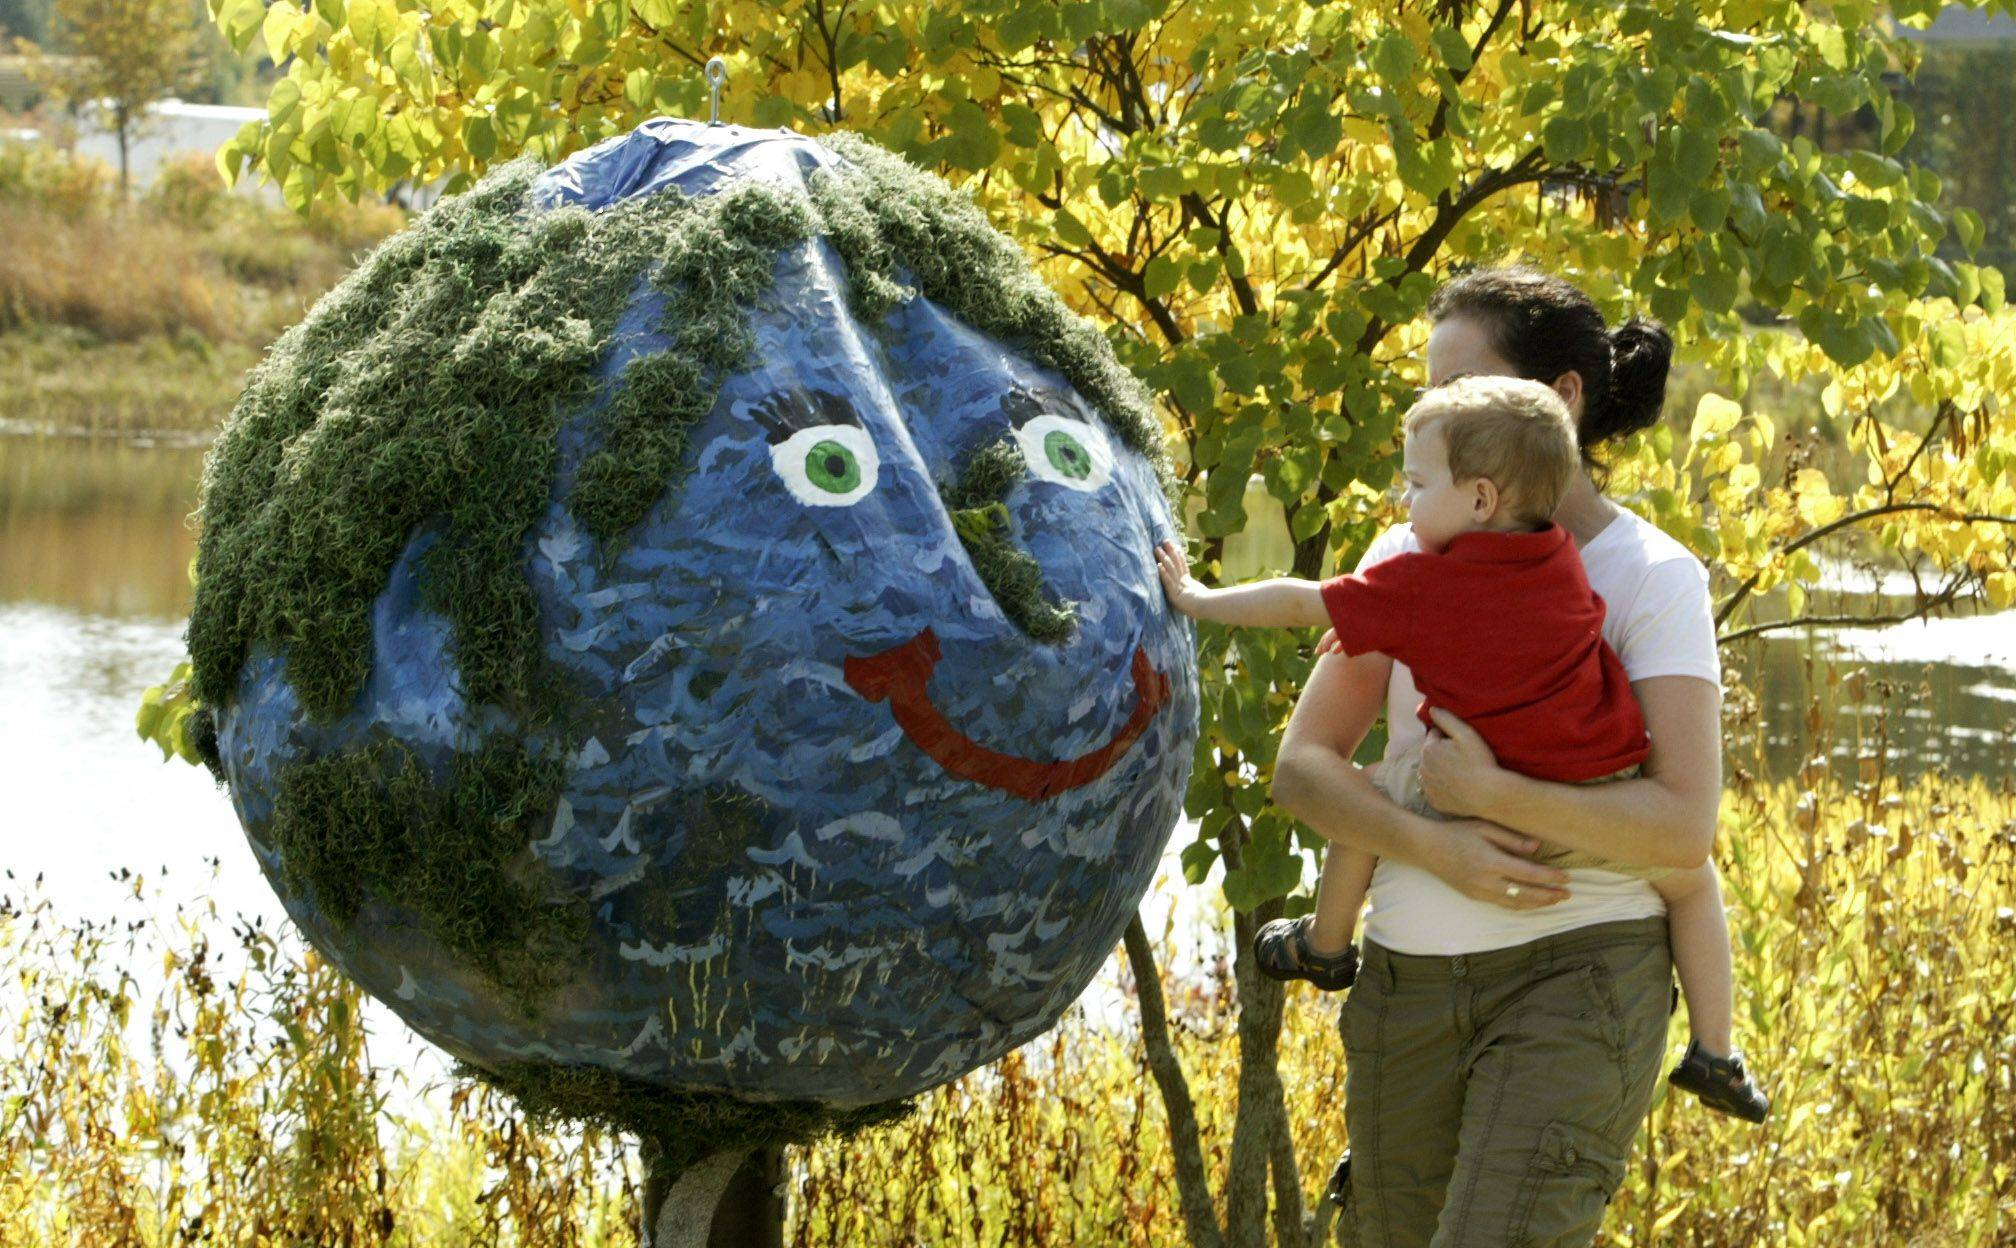 Jen Clark and her son Nathan, 2, of Chicago play with Mother Earth by Troop #50223 in Lombard during Scarecrows decorated by area Girl Scouts around Meadow Lake at the Morton Arboretum Sunday in Lisle.